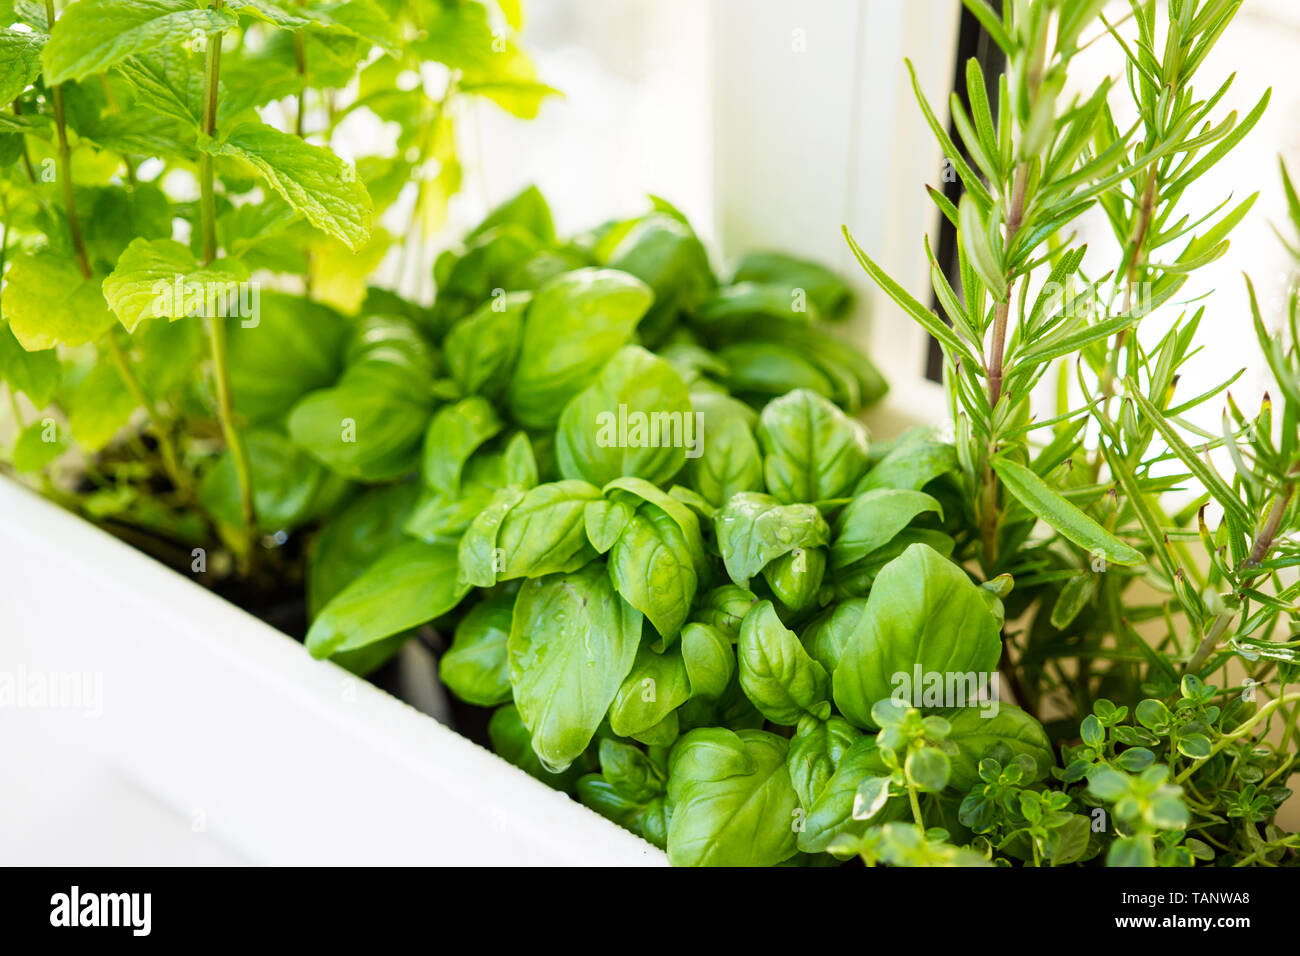 Mixed fresh aromatic herbs growing in pot, urban balcony garden with houseplants closeup Stock Photo